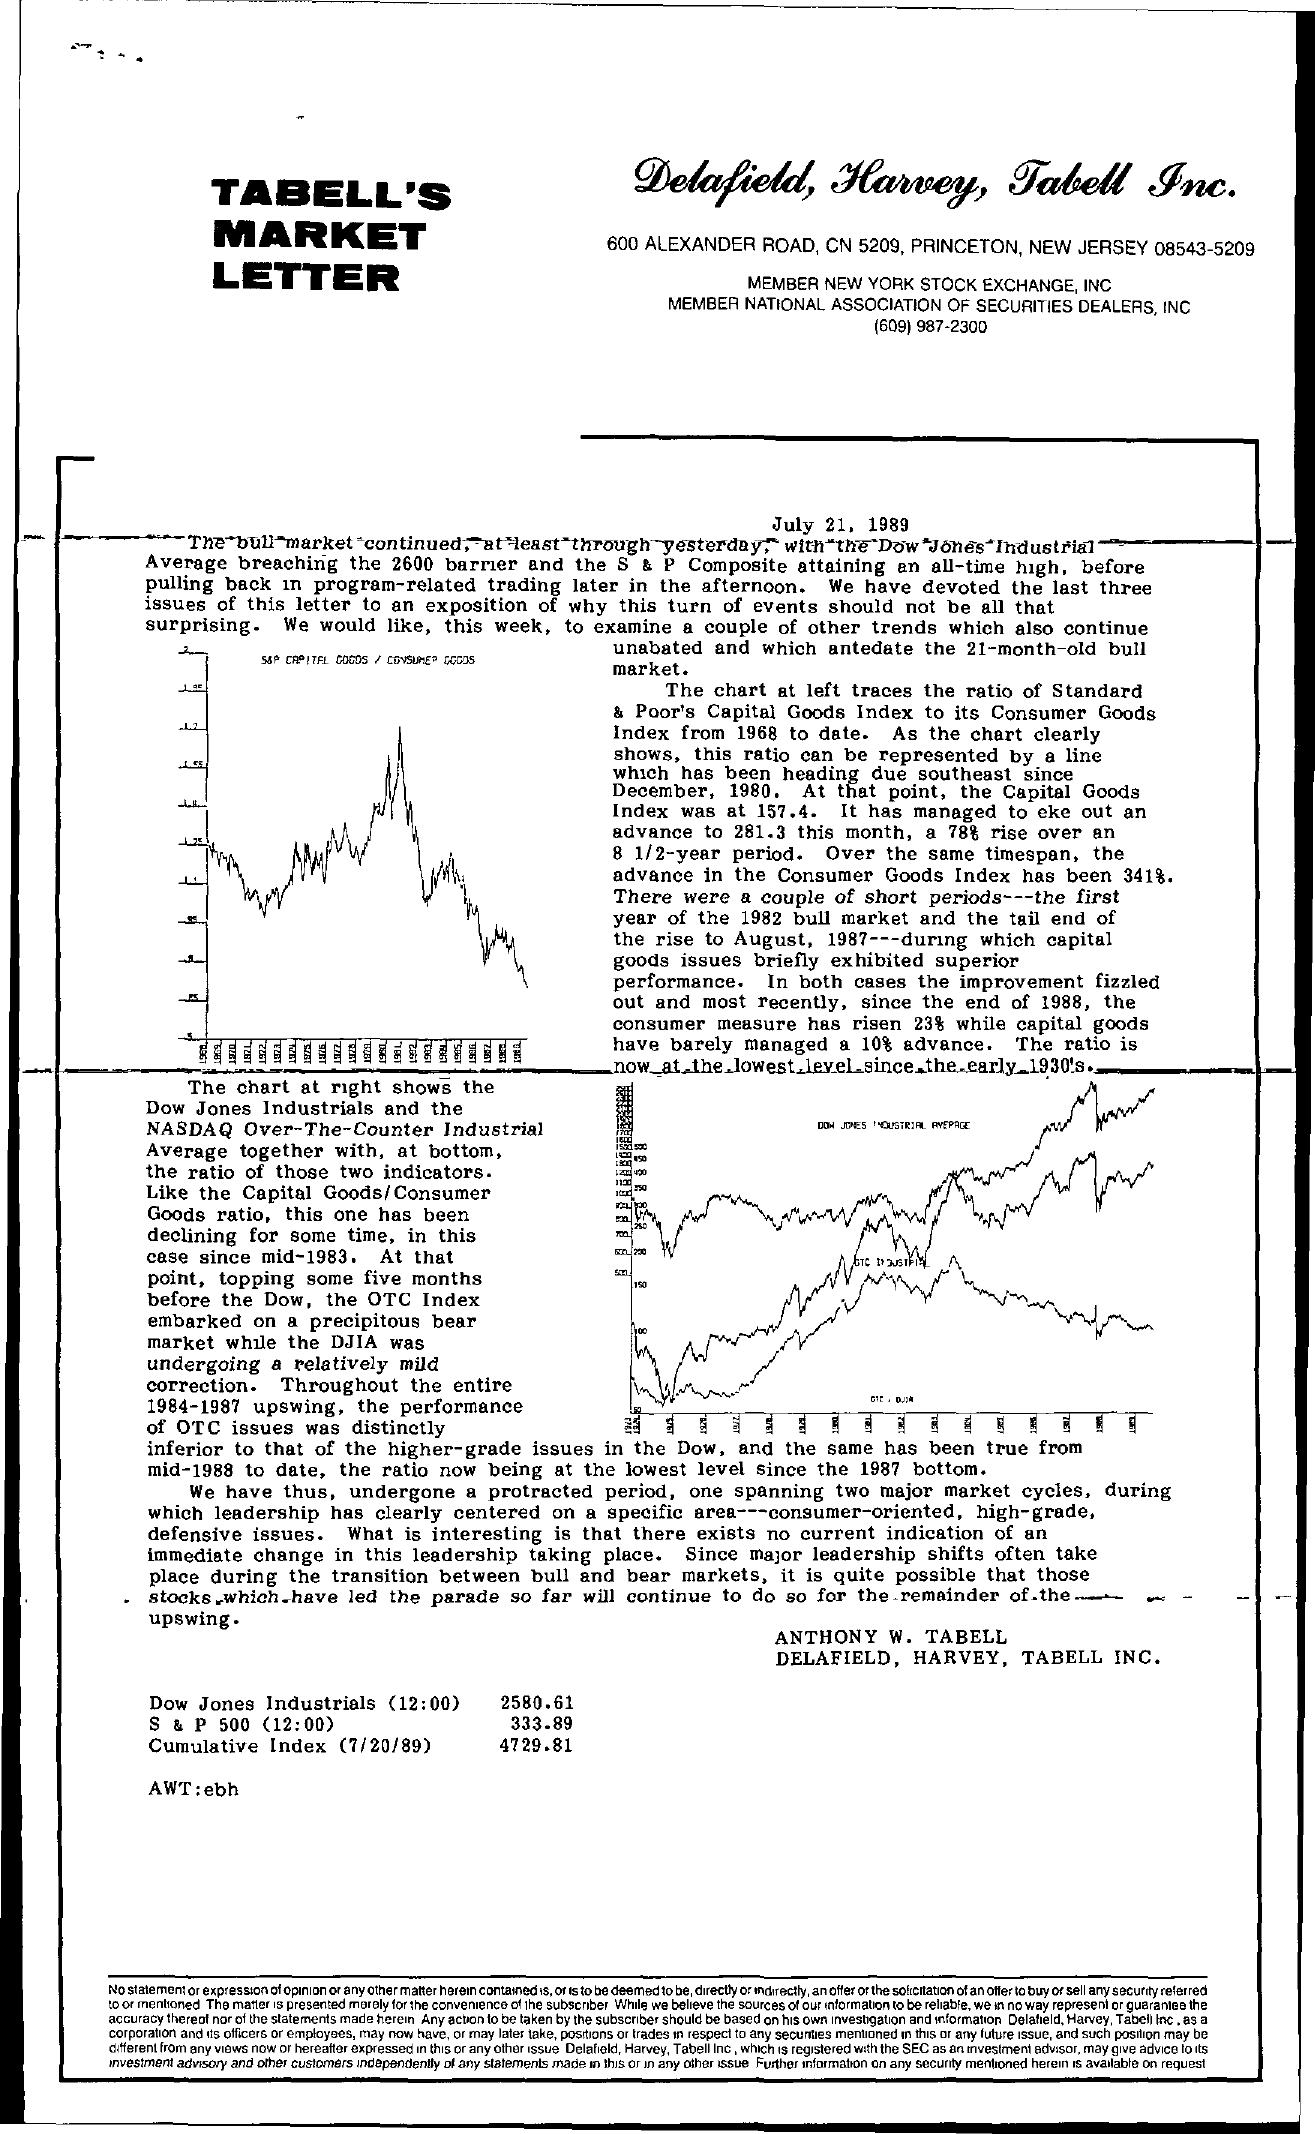 Tabell's Market Letter - July 21, 1989